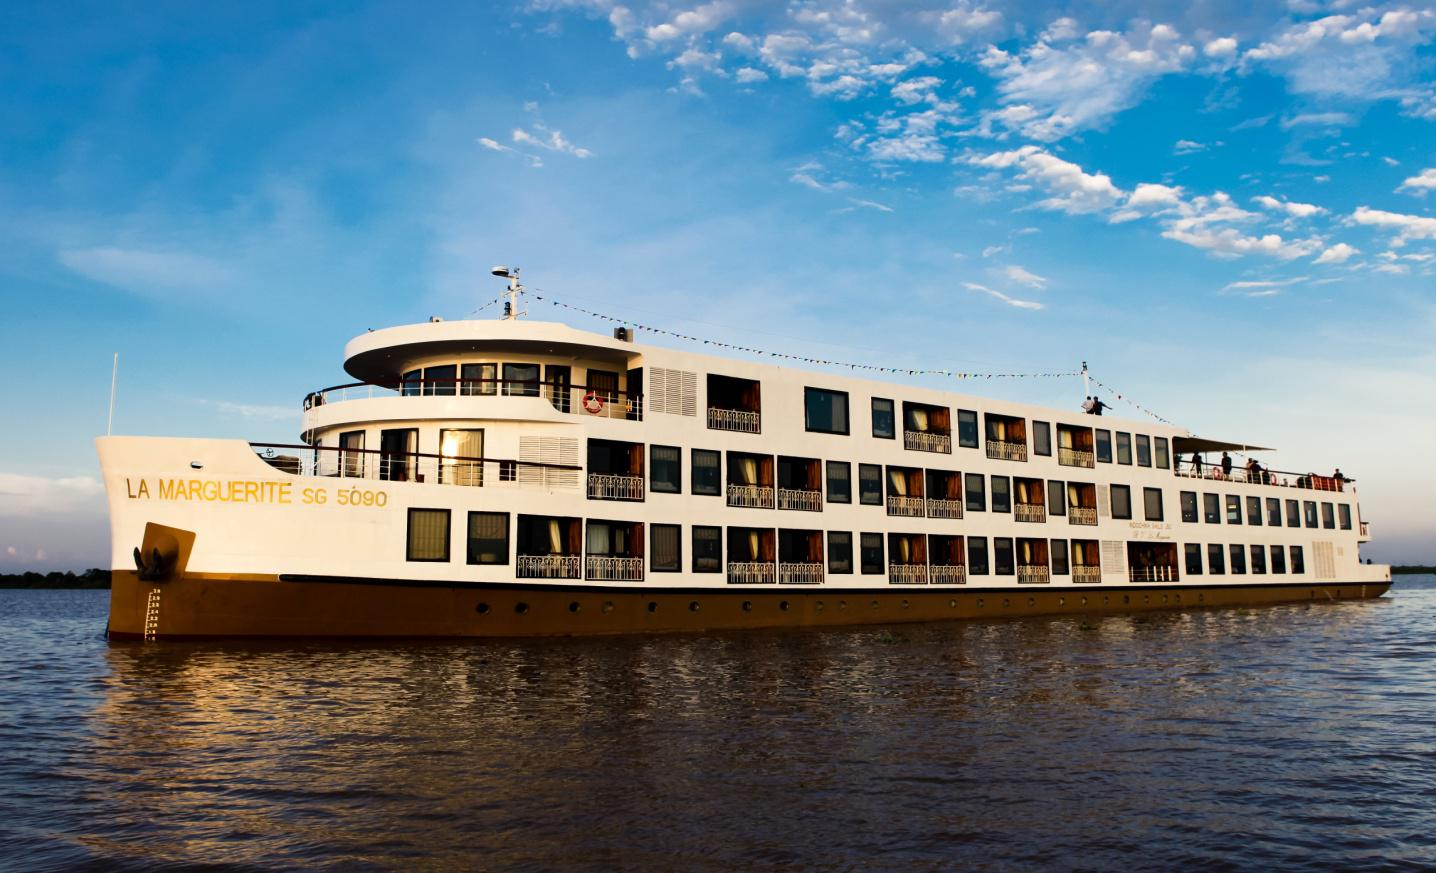 Experiencing A River Cruise Through The Mekong In Southeast Asia